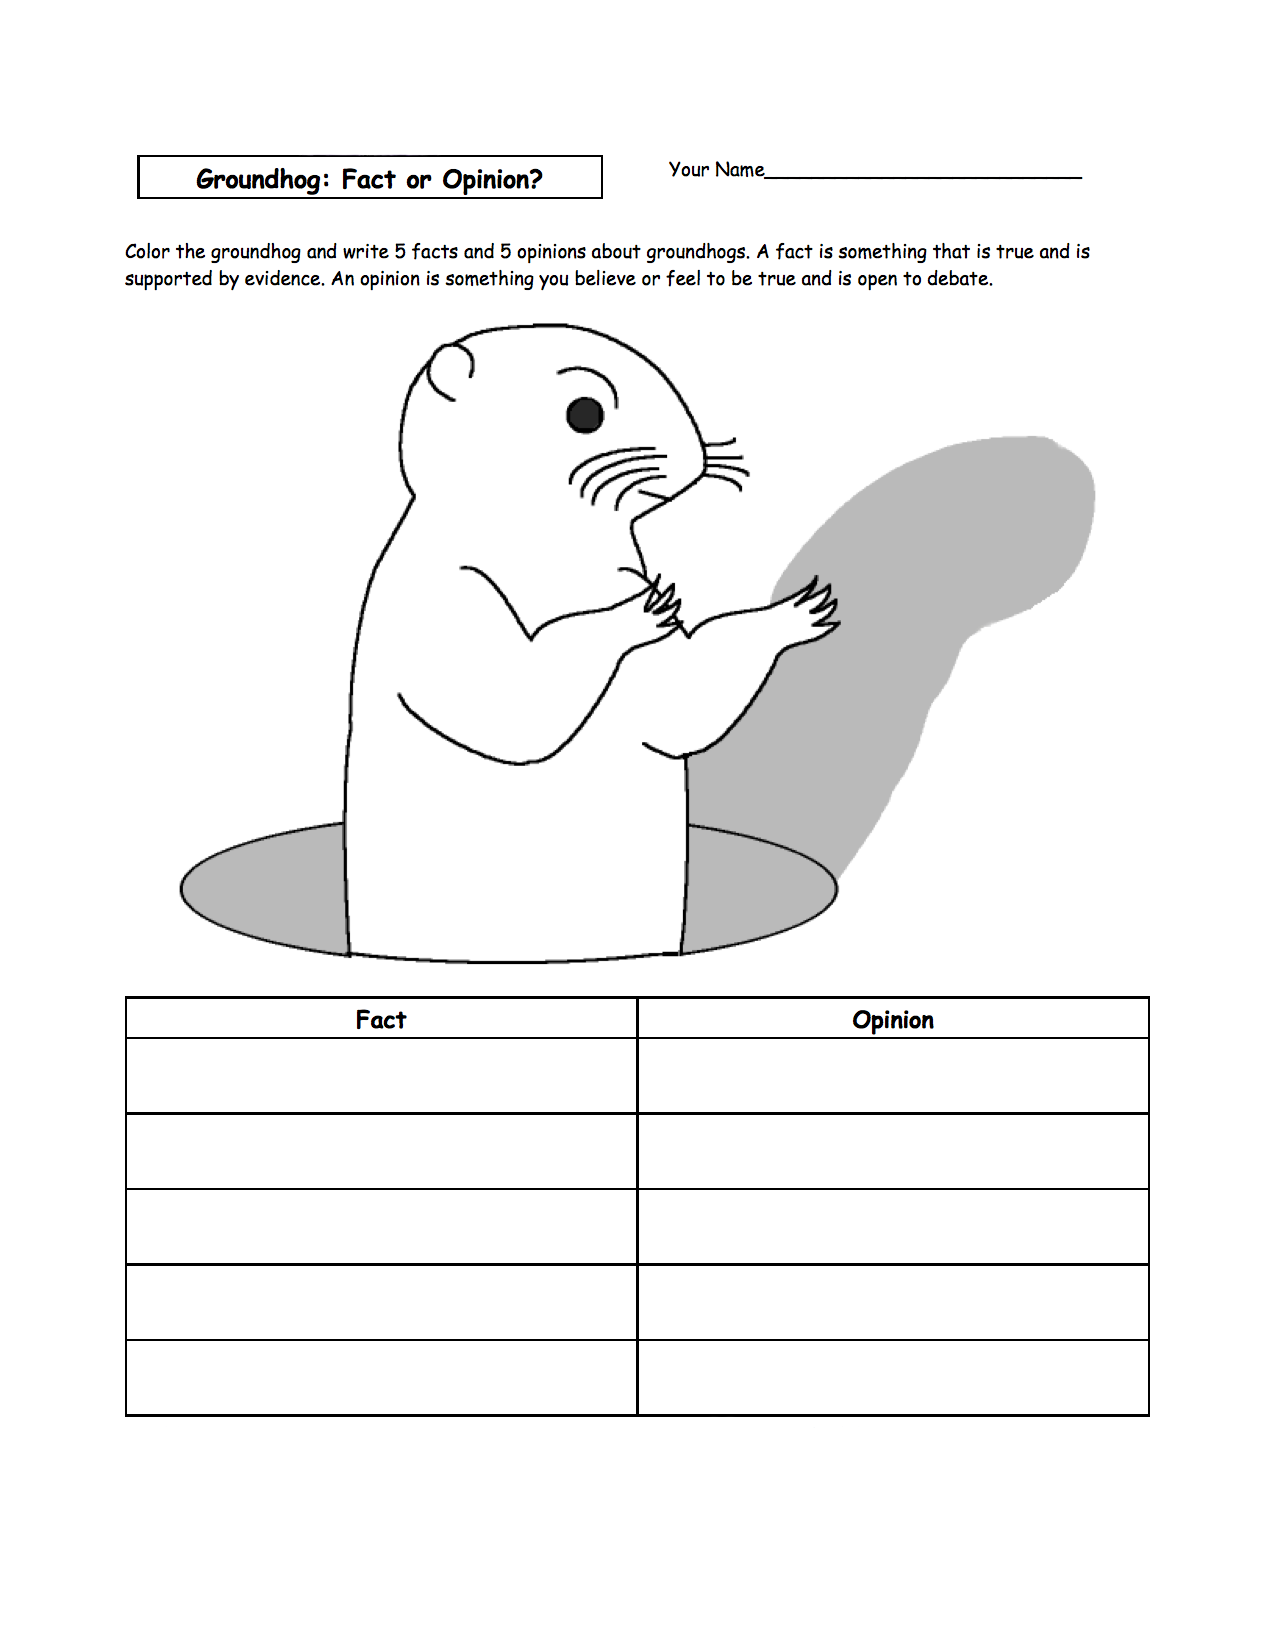 Gratifying image regarding groundhog printable